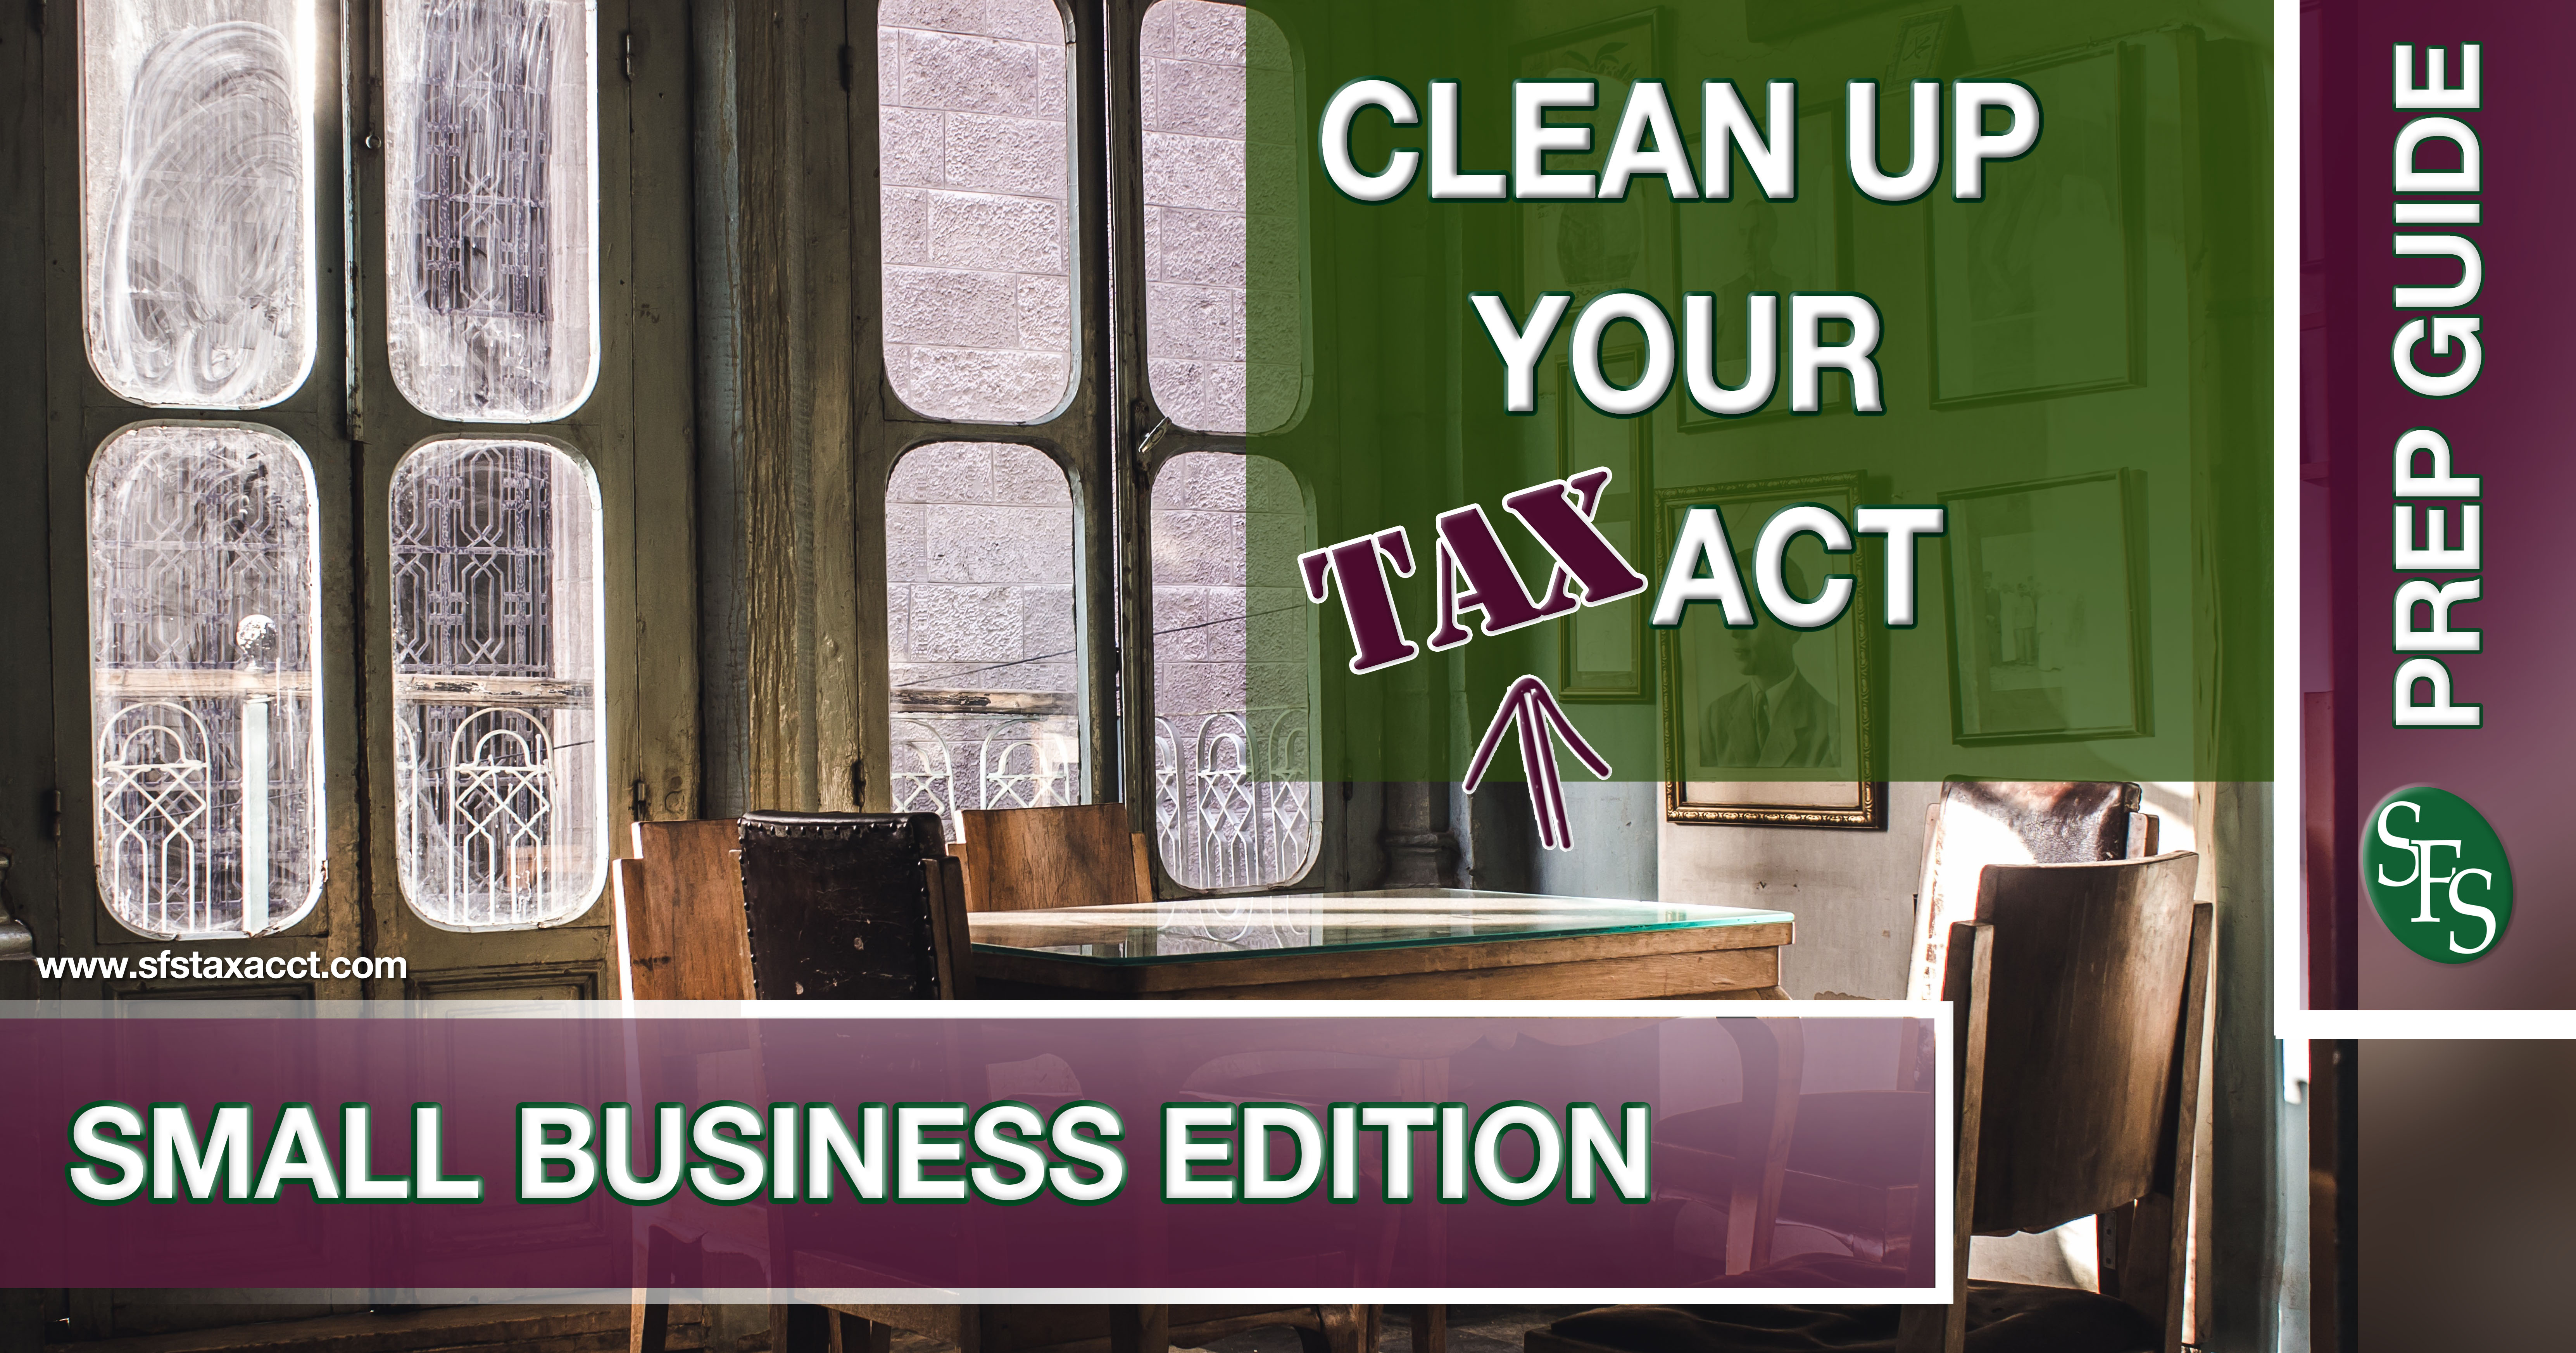 Clean Up Your Tax Act Small Business Edition, old building, tax organization, room, tax documents